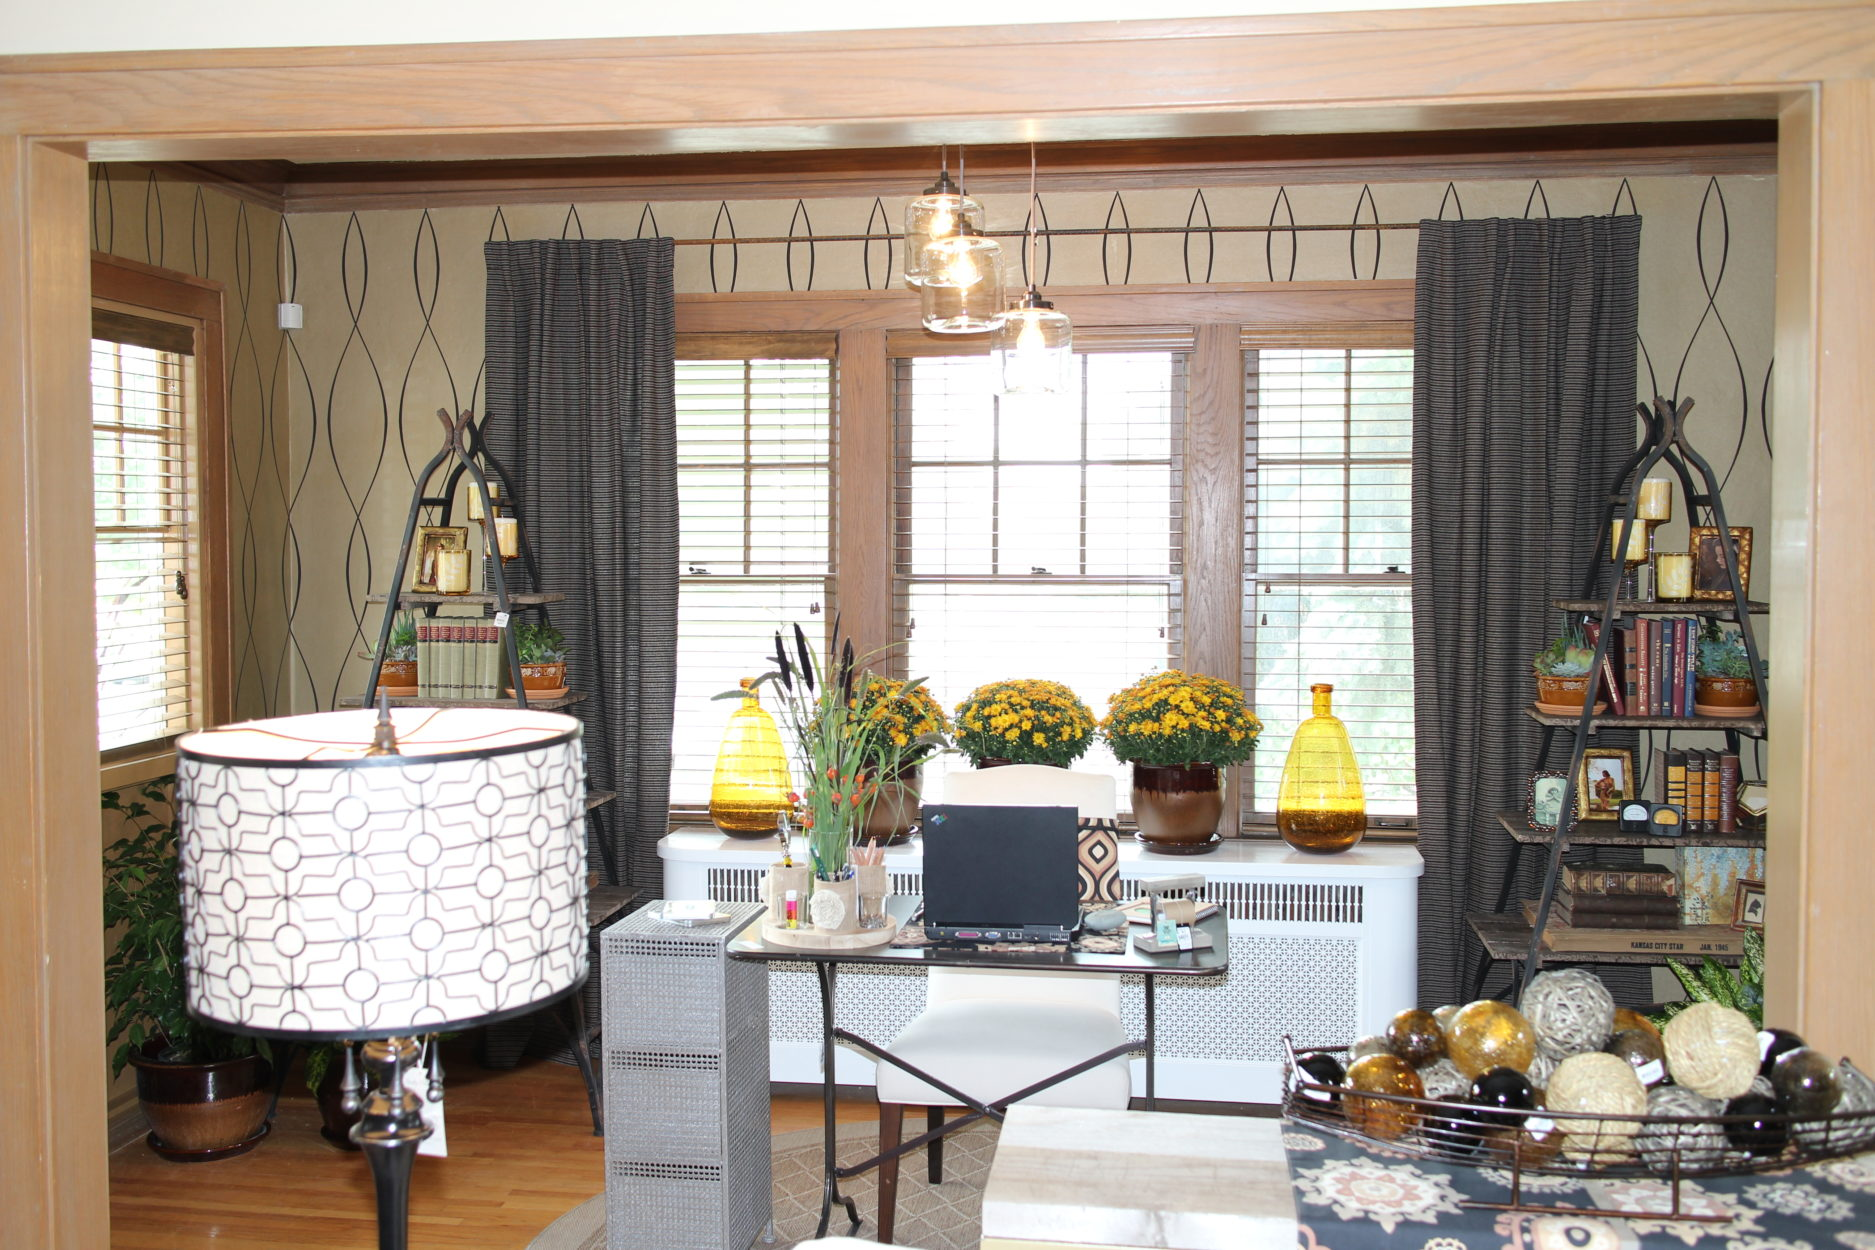 events & seminars Sunroom: Extending off the living room is a calming, inspiring office space featuring warm harvest colors interpreted in a new way.